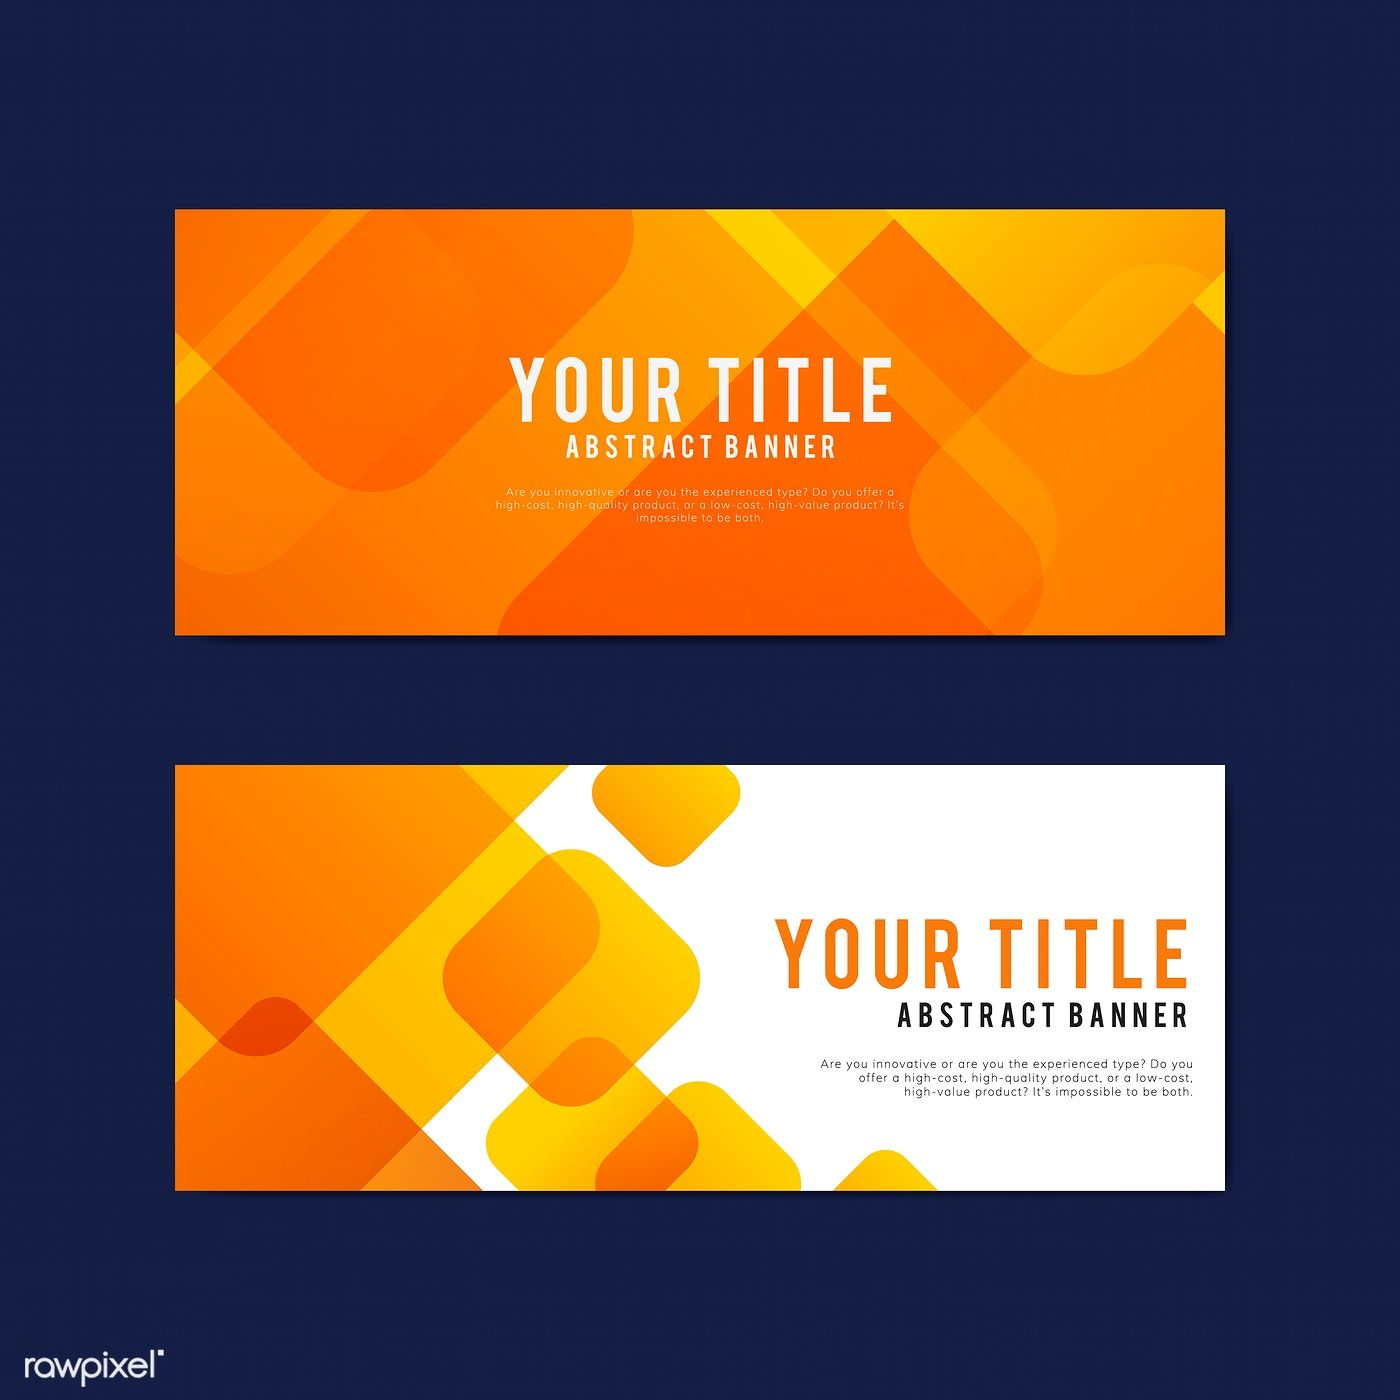 Colorful And Abstract Banner Design Templates Free Image By Rawpixel Com Tvzsu Banner Design Template Design Web Banner Design